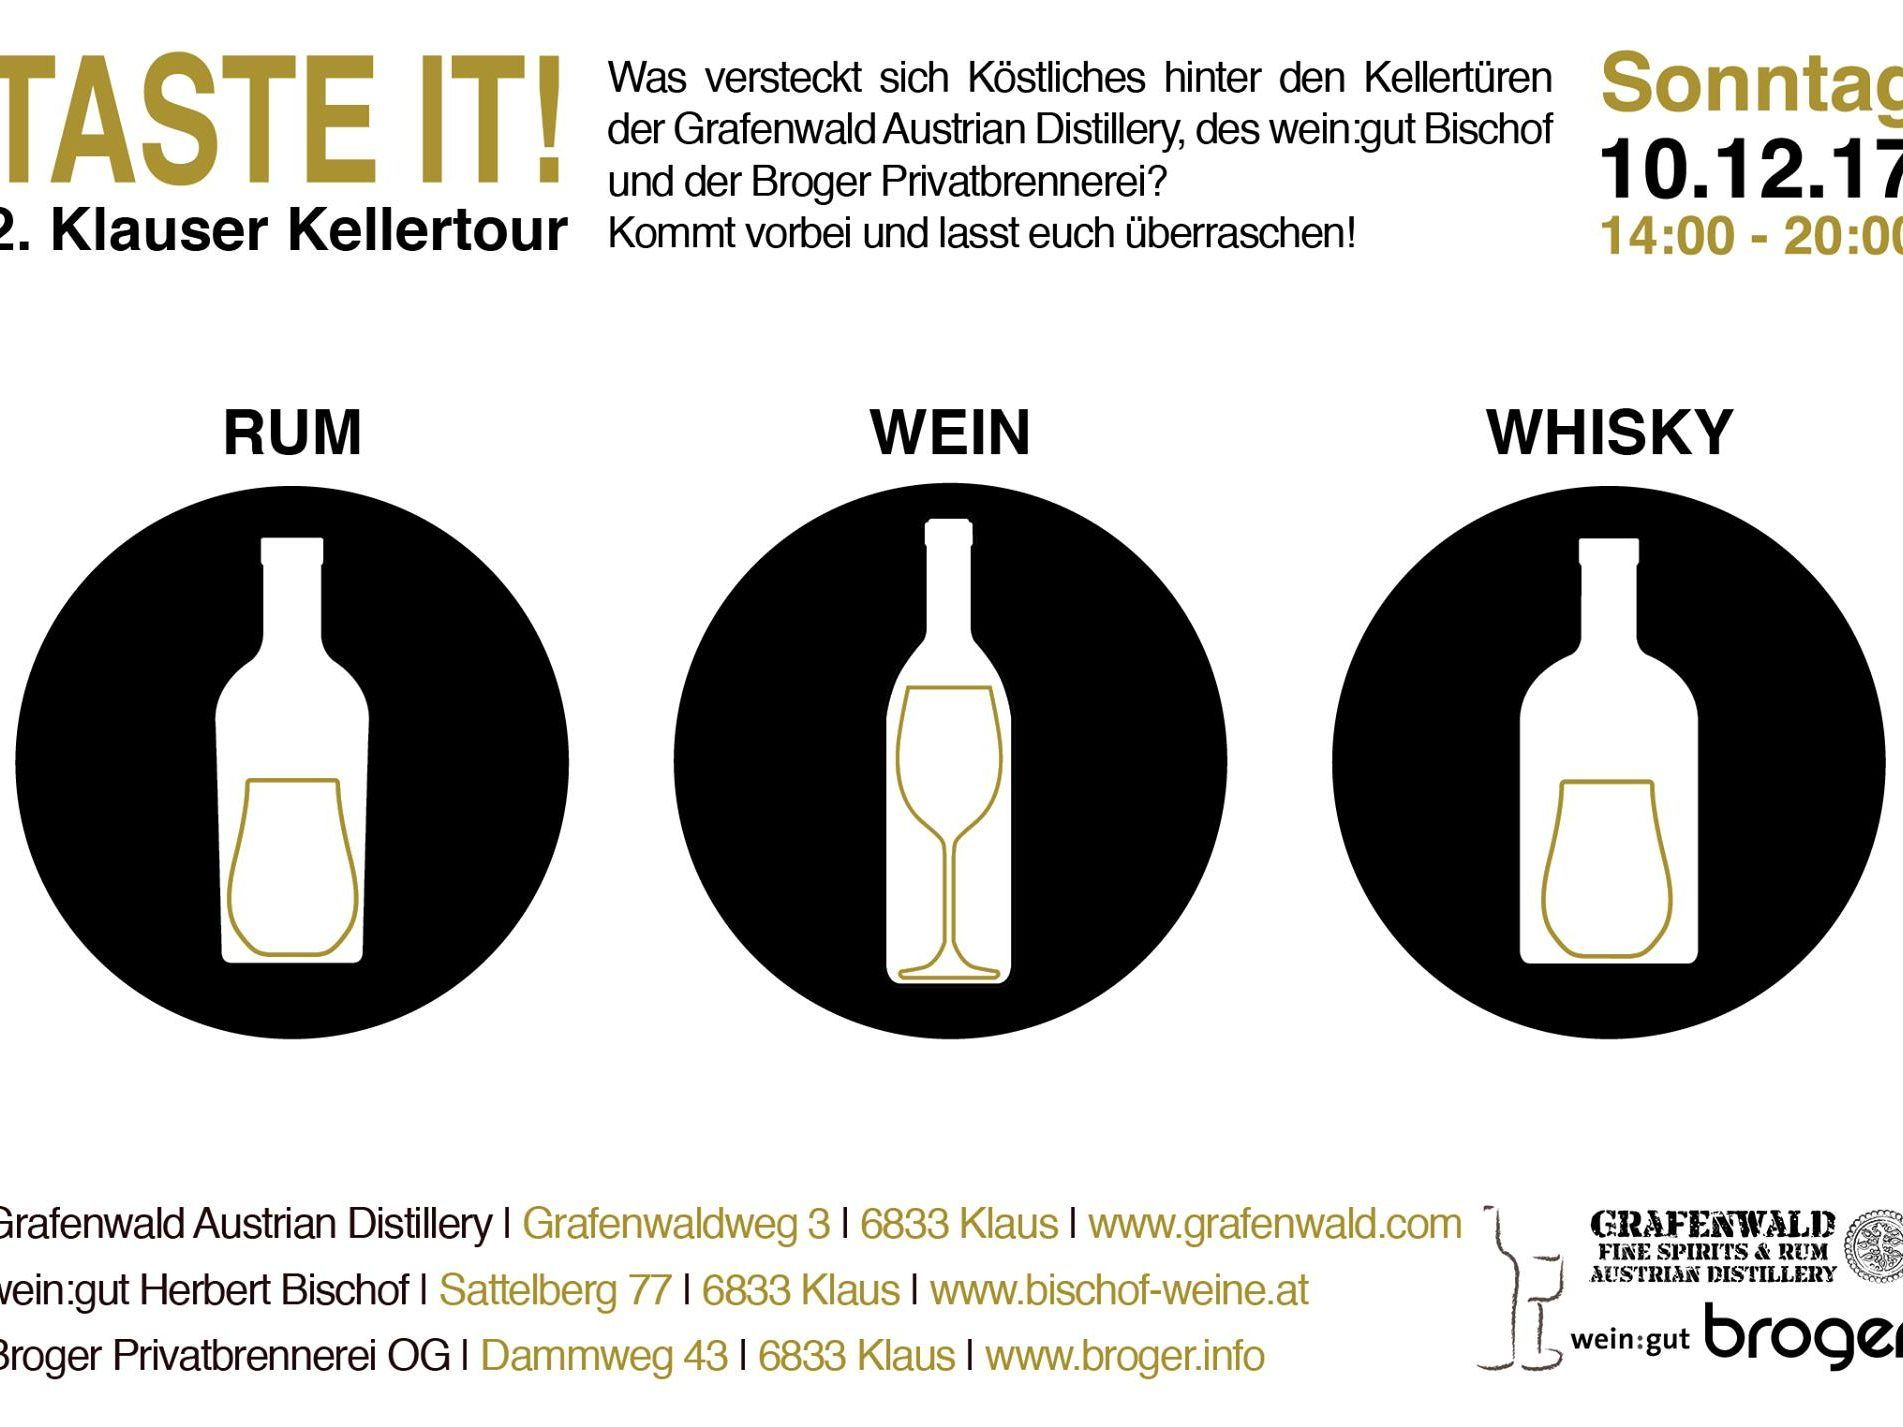 Taste it! 2. Klauser Kellertour